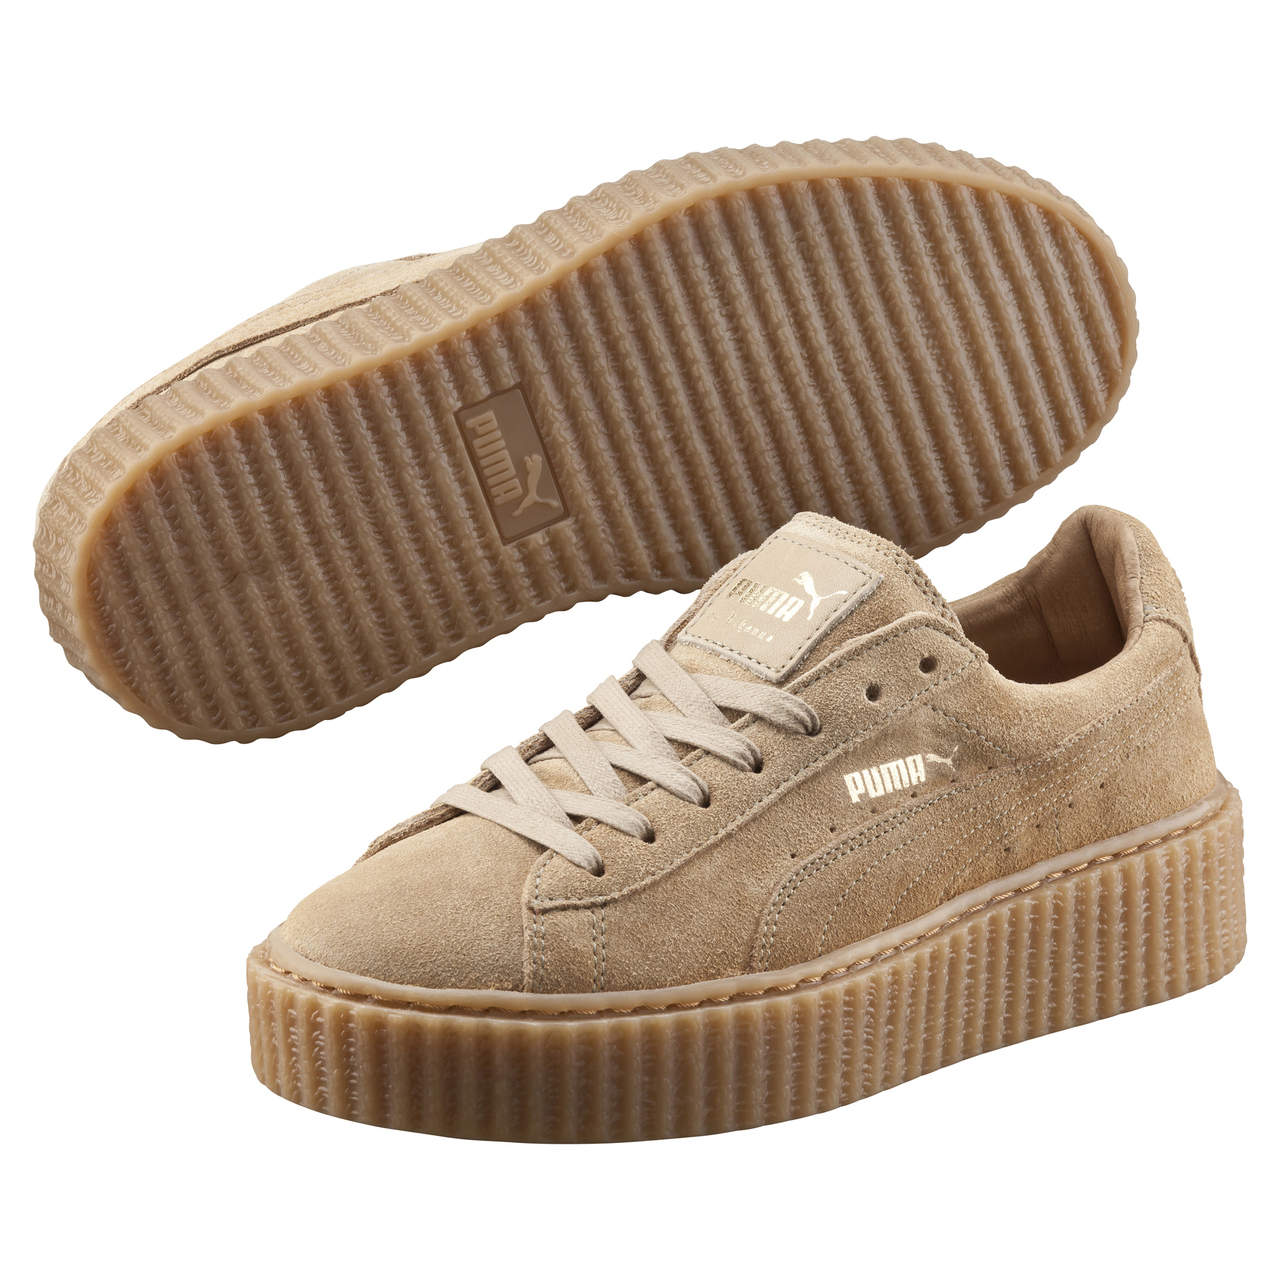 puma x rihanna suede creepers oatmeal in natural lyst. Black Bedroom Furniture Sets. Home Design Ideas